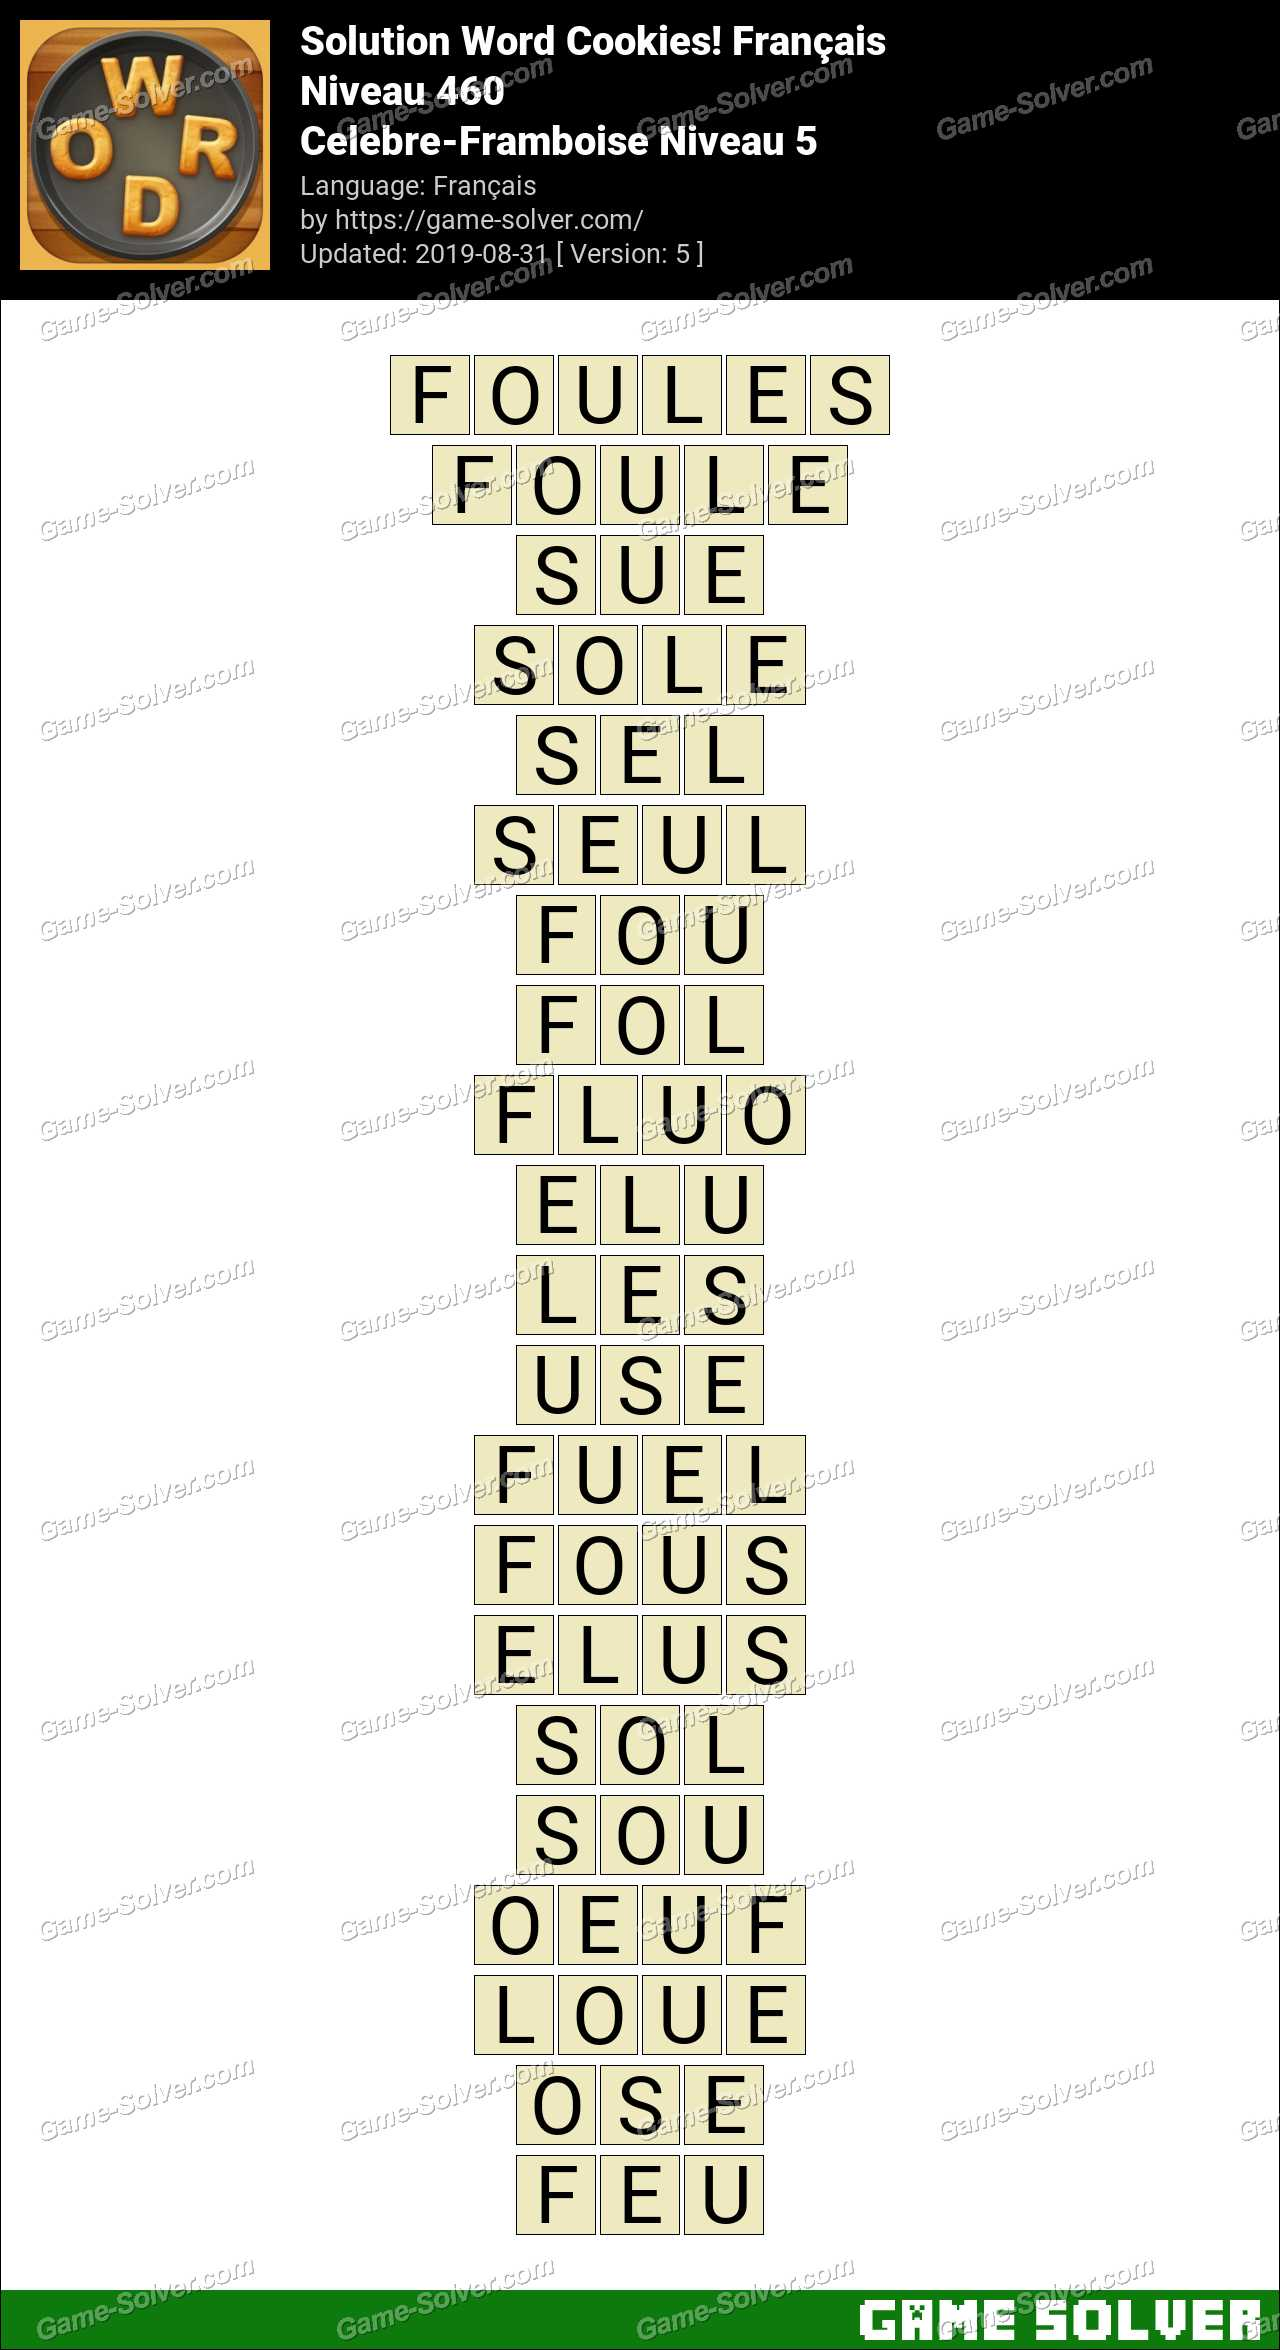 Solution Word Cookies Celebre-Framboise Niveau 5